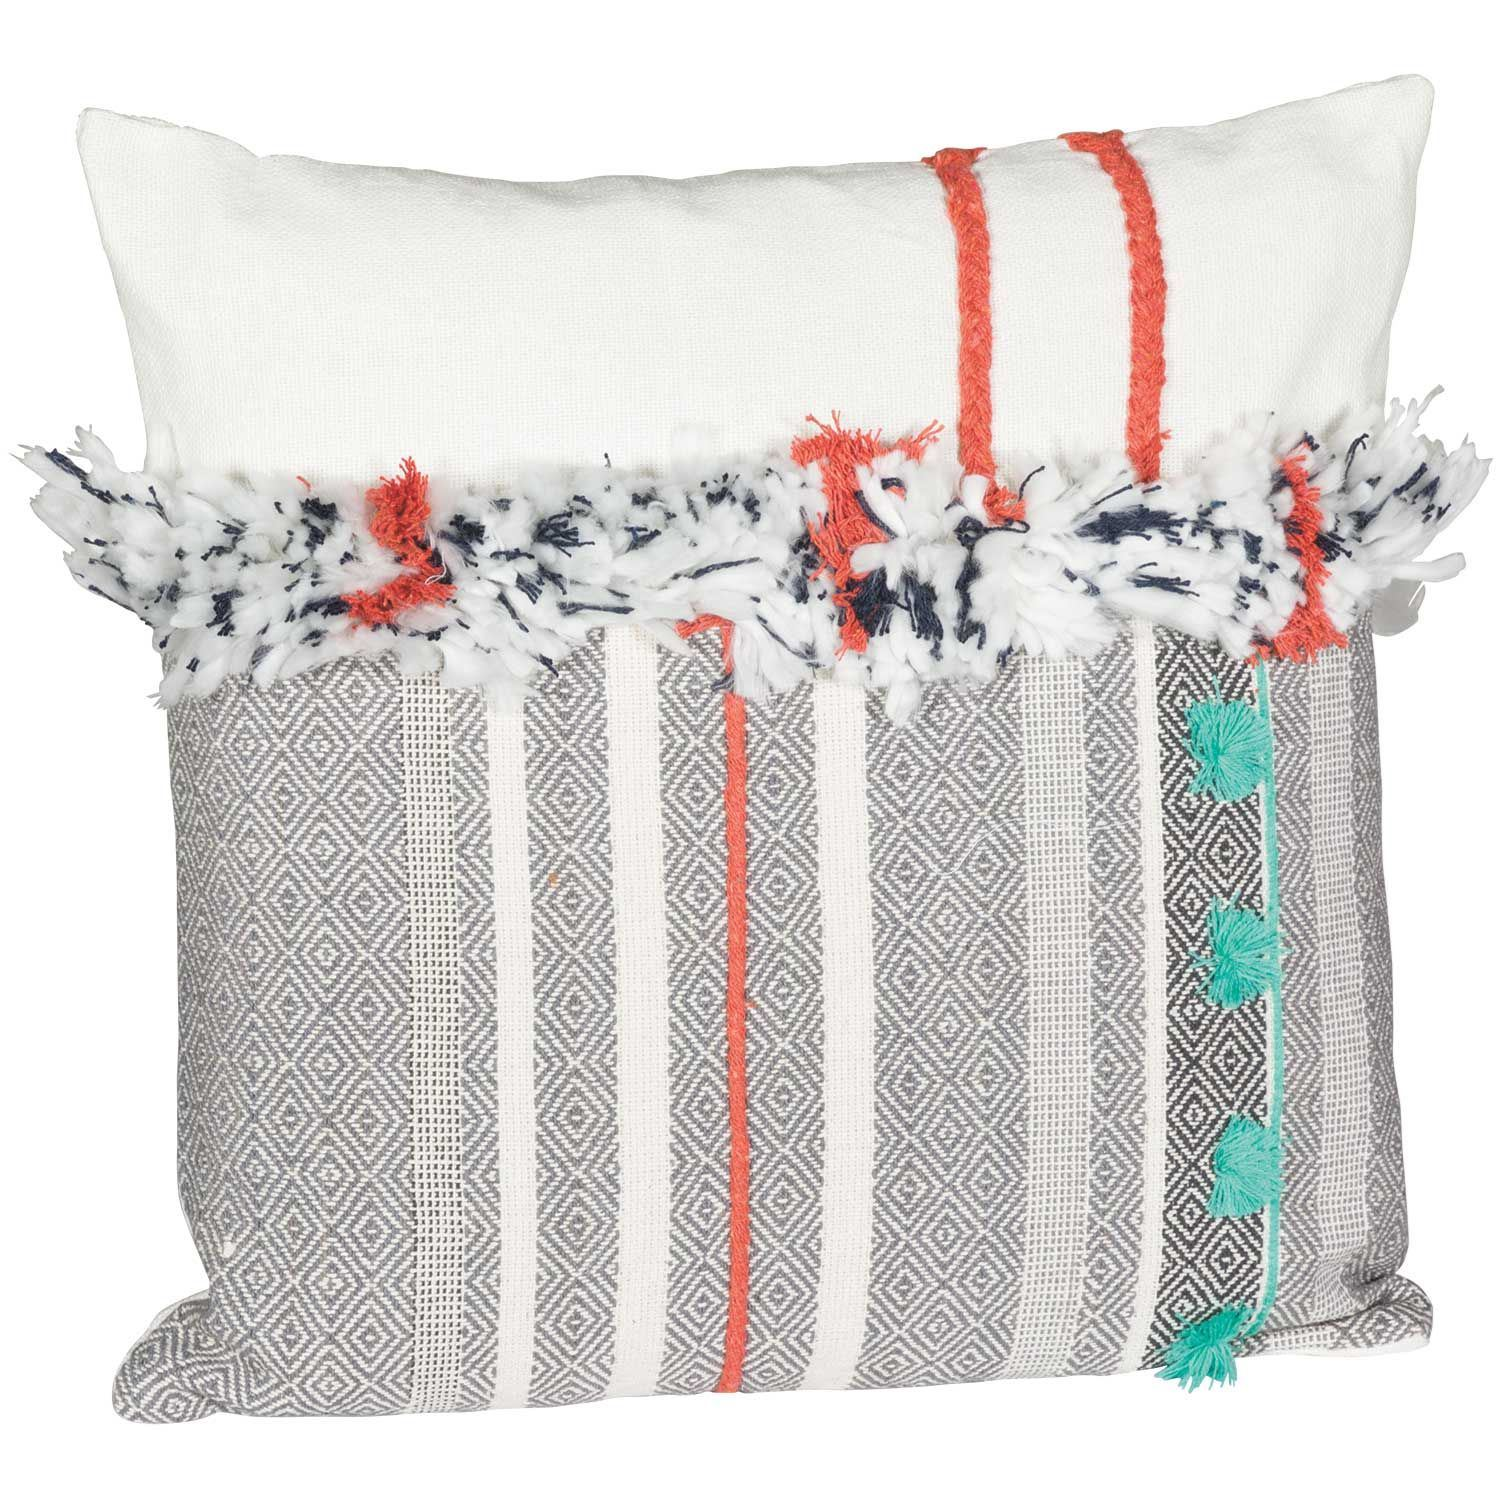 Picture of Gaines Effect 20X20 Decorative Pillow